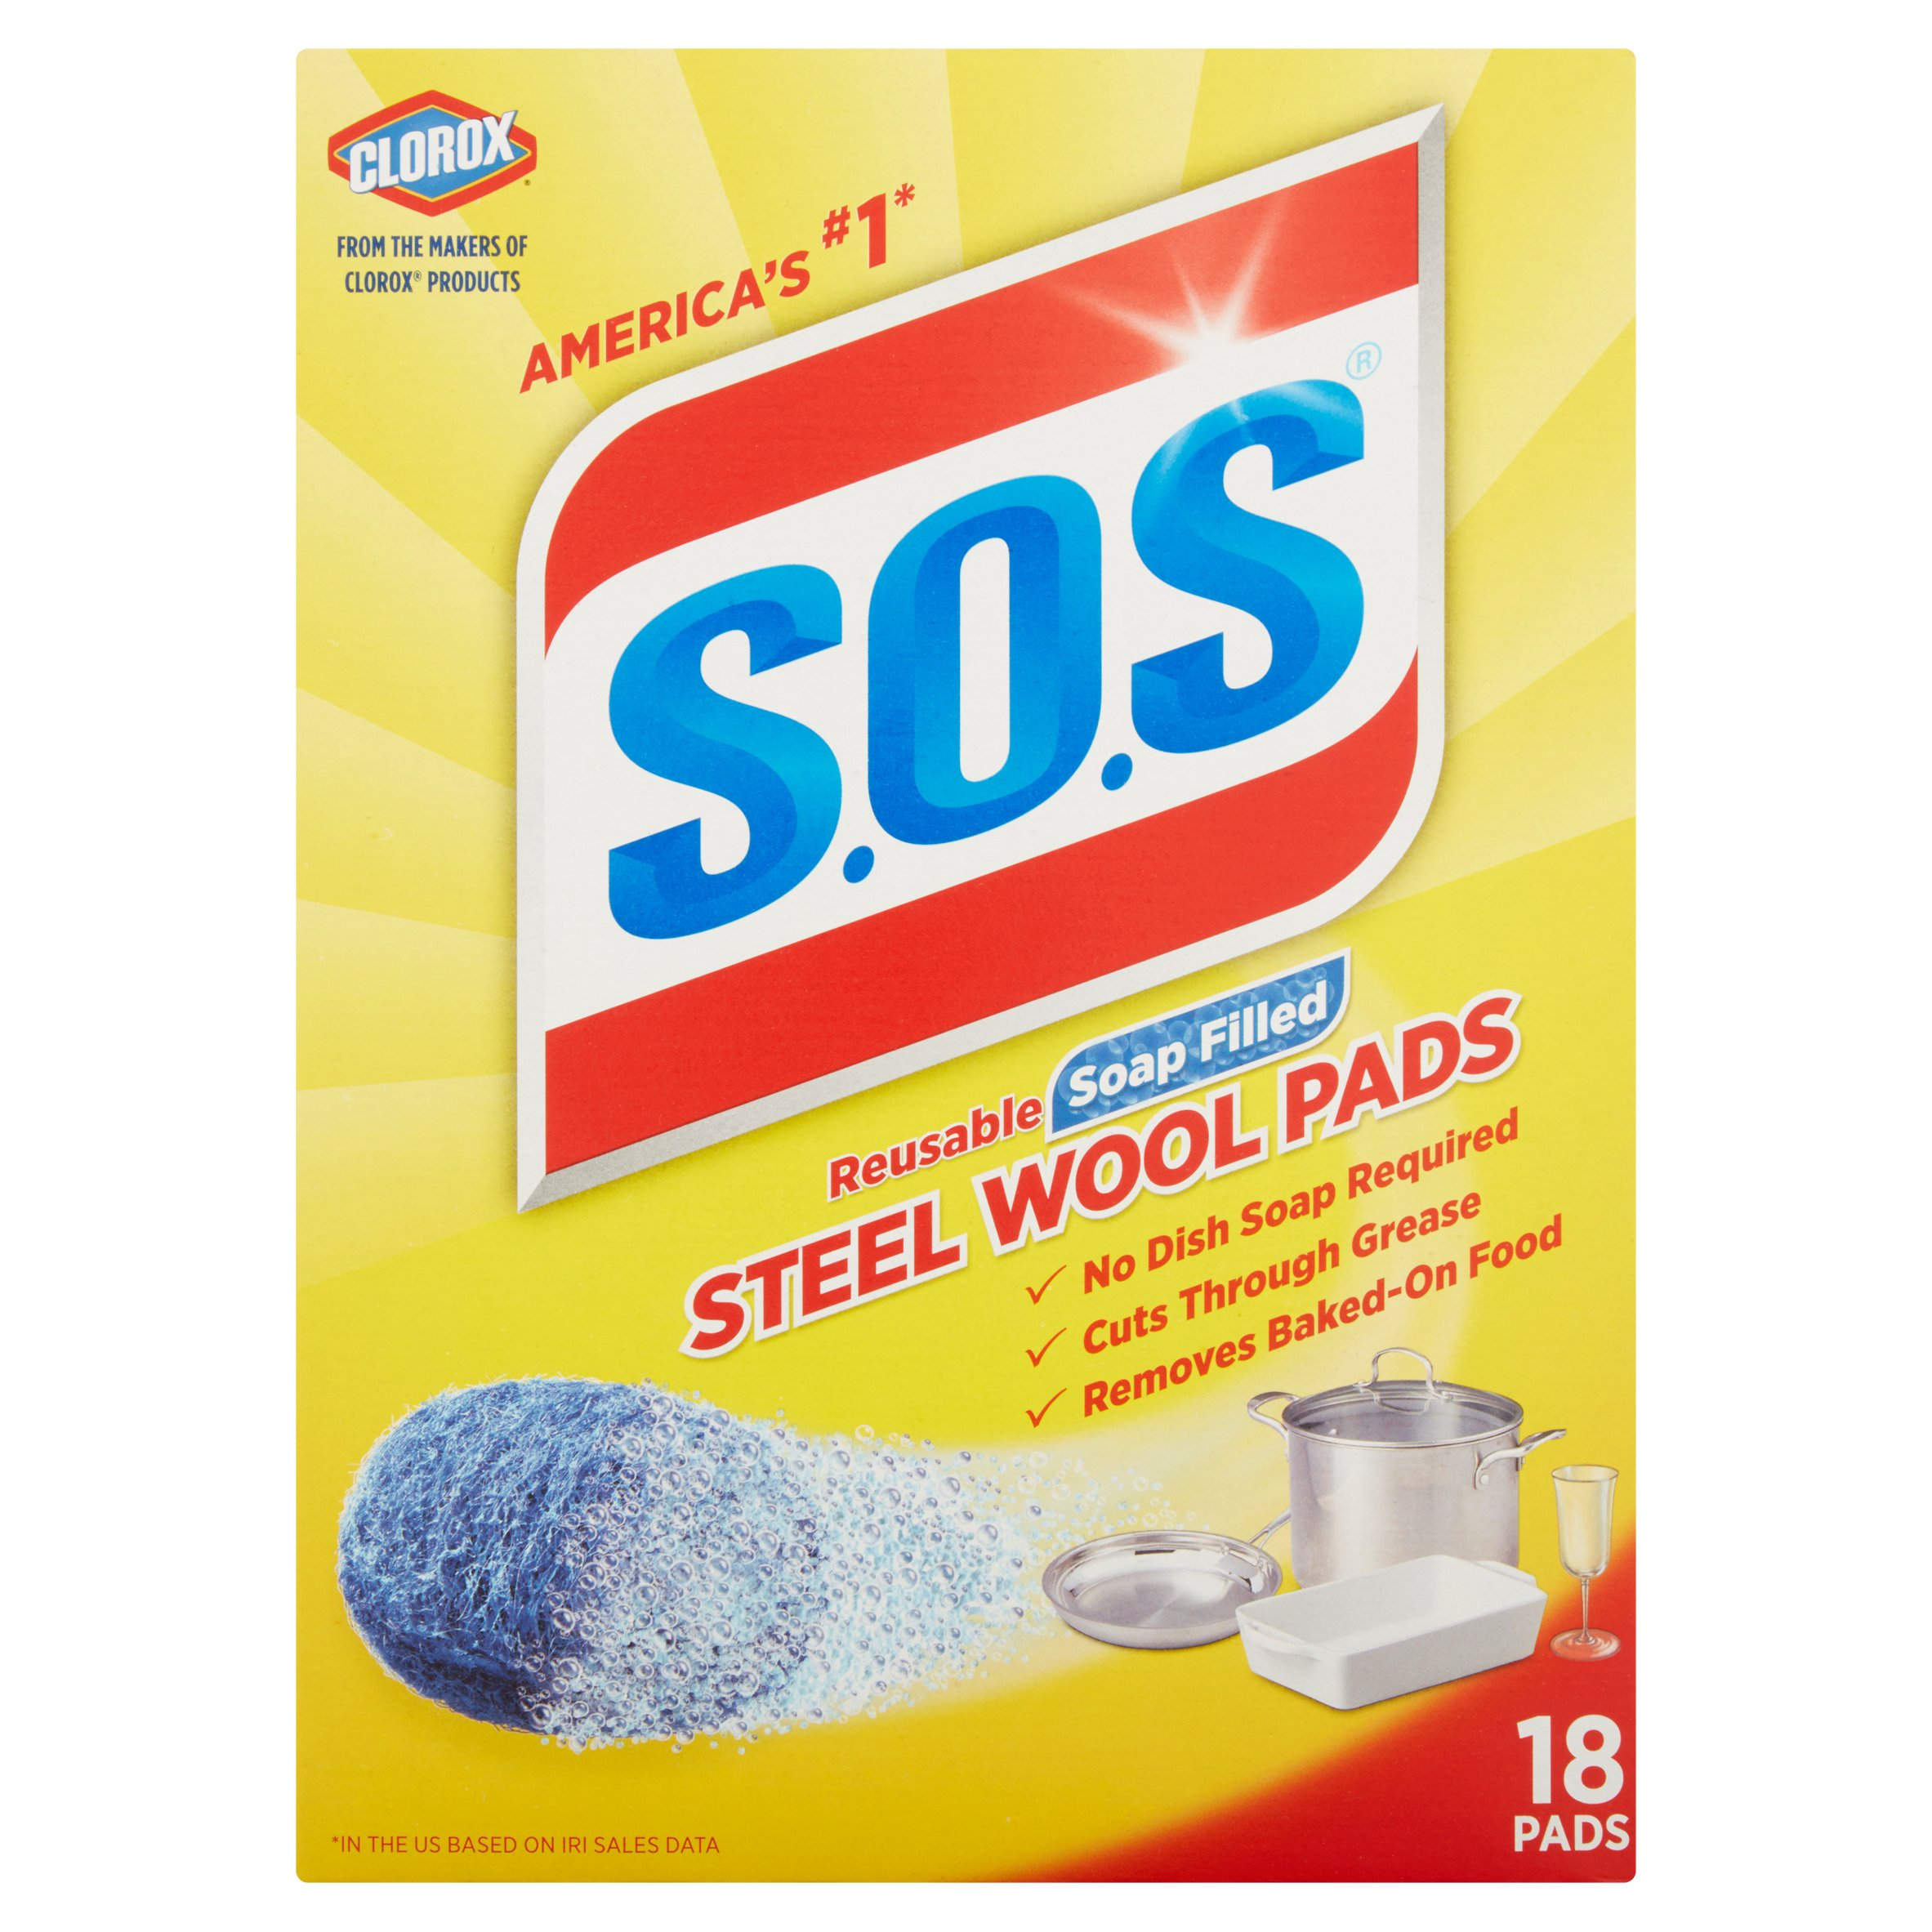 Clorox S.O.S Reusable Soap Filled 18 Steel Wool Pads